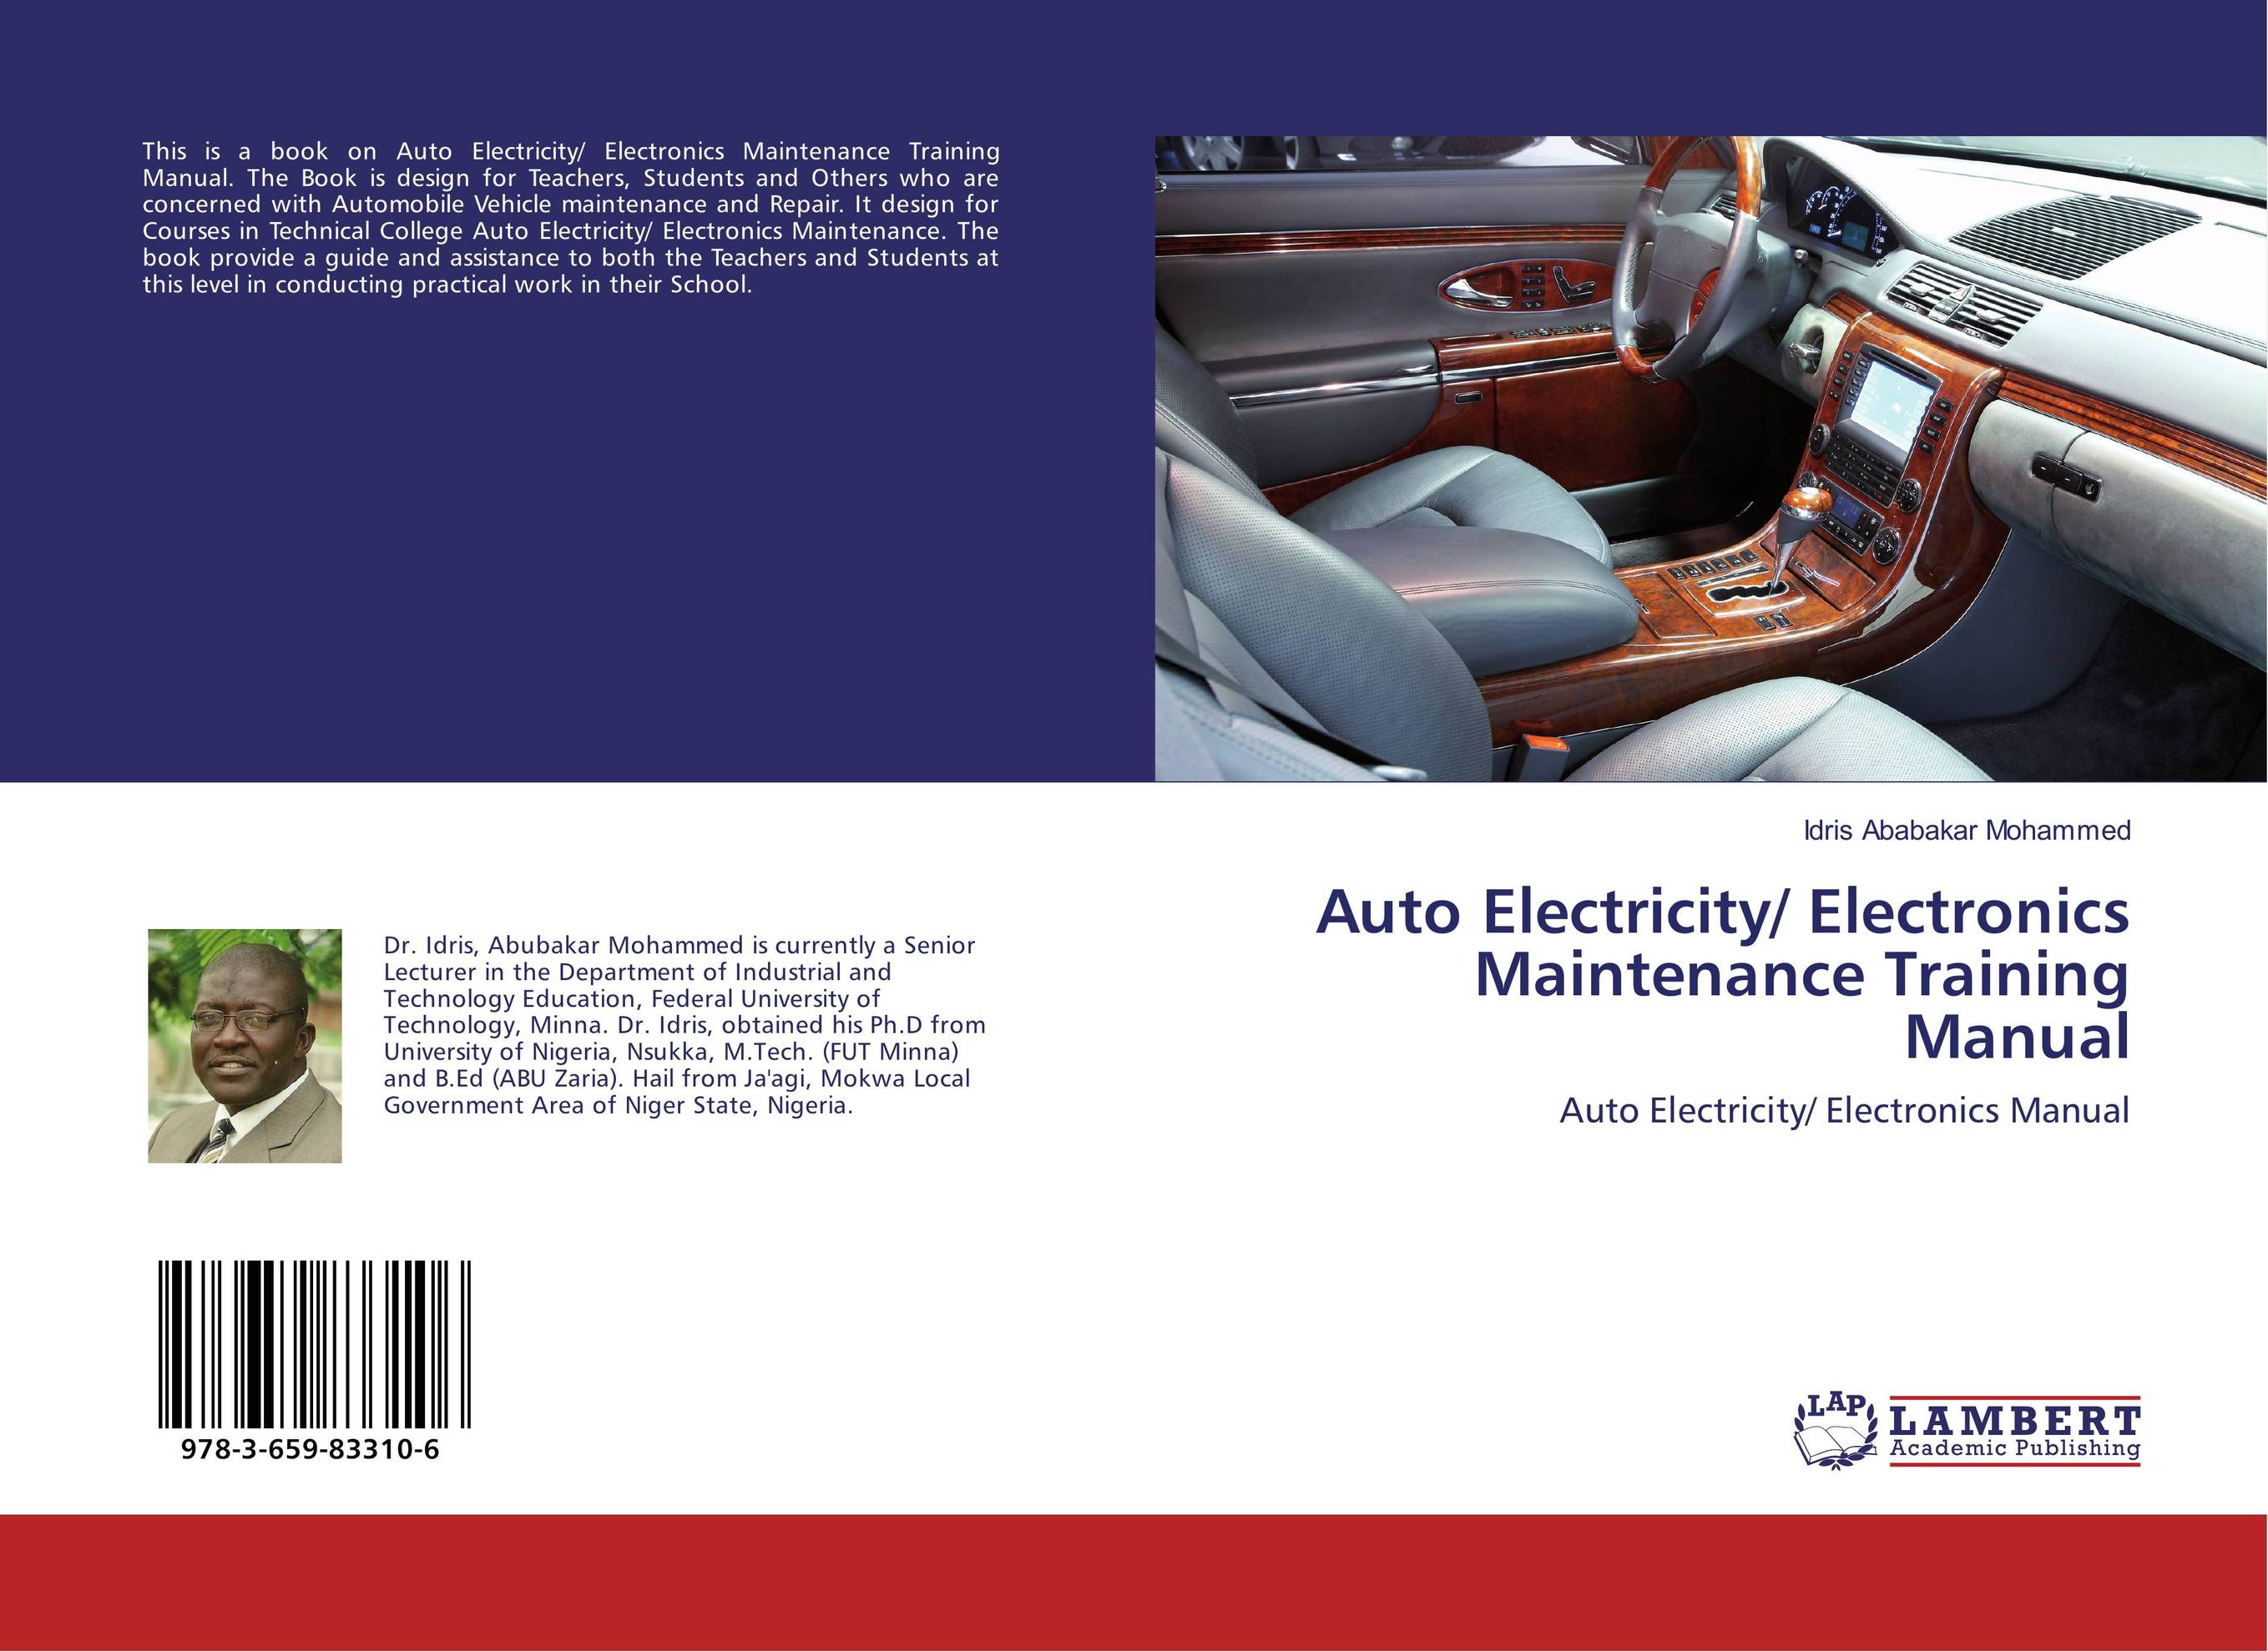 Auto Electricity/ Electronics Maintenance Training Manual lazarowich classic chevies of the 50s – a maintenance and repair manual